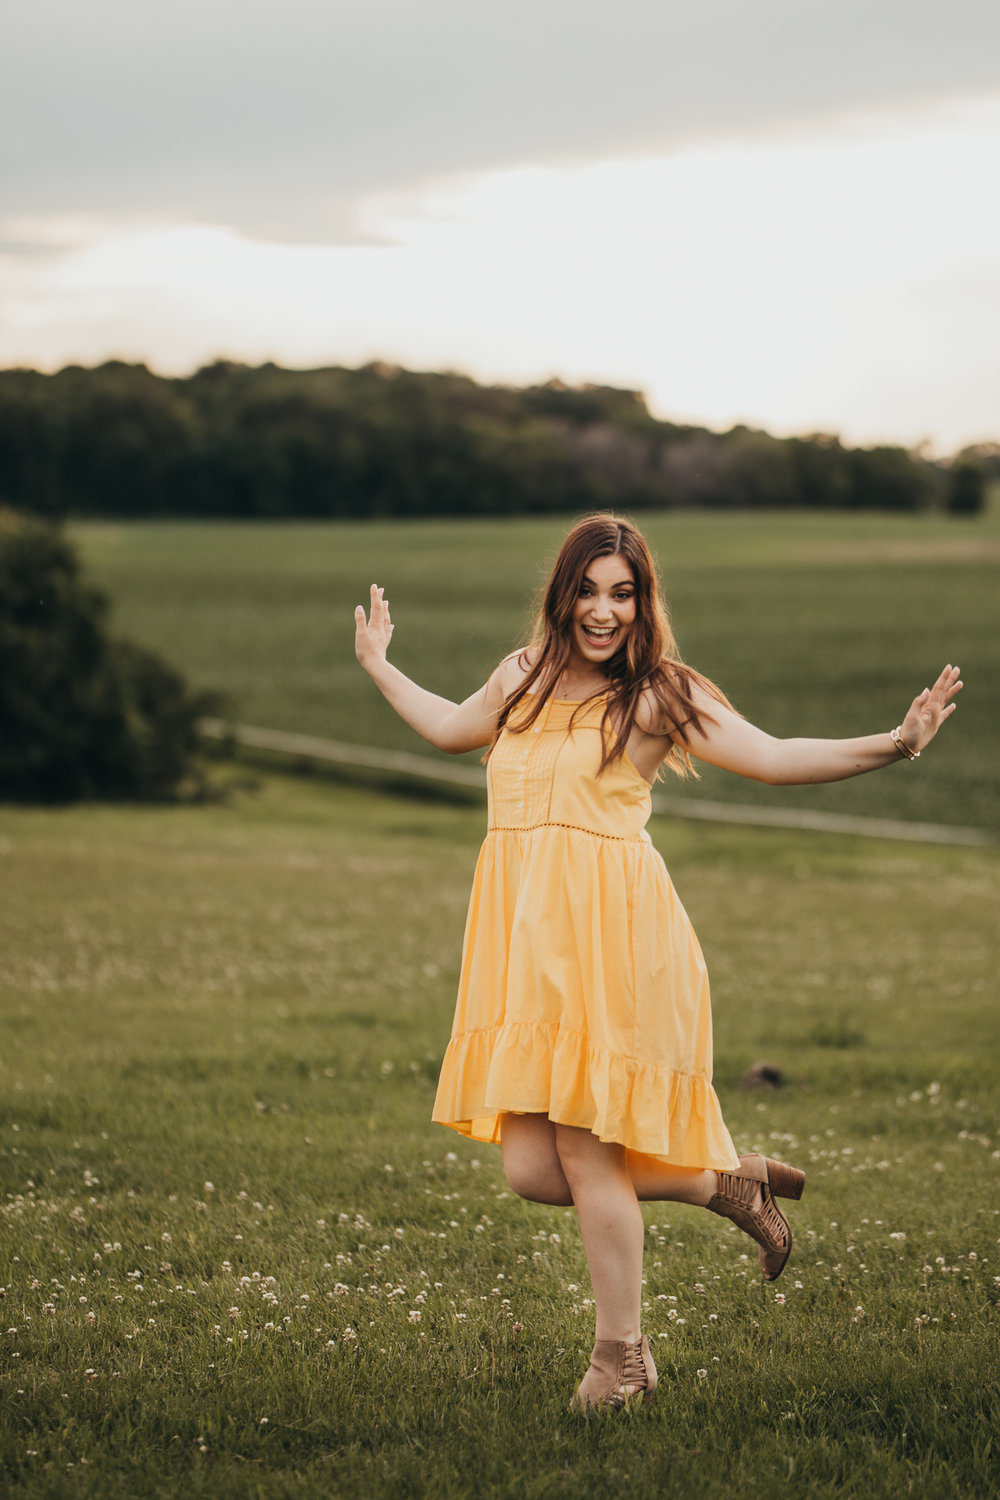 girl dancing in a field with horses - Eden Prairie Senior Photographer - AMG Photography